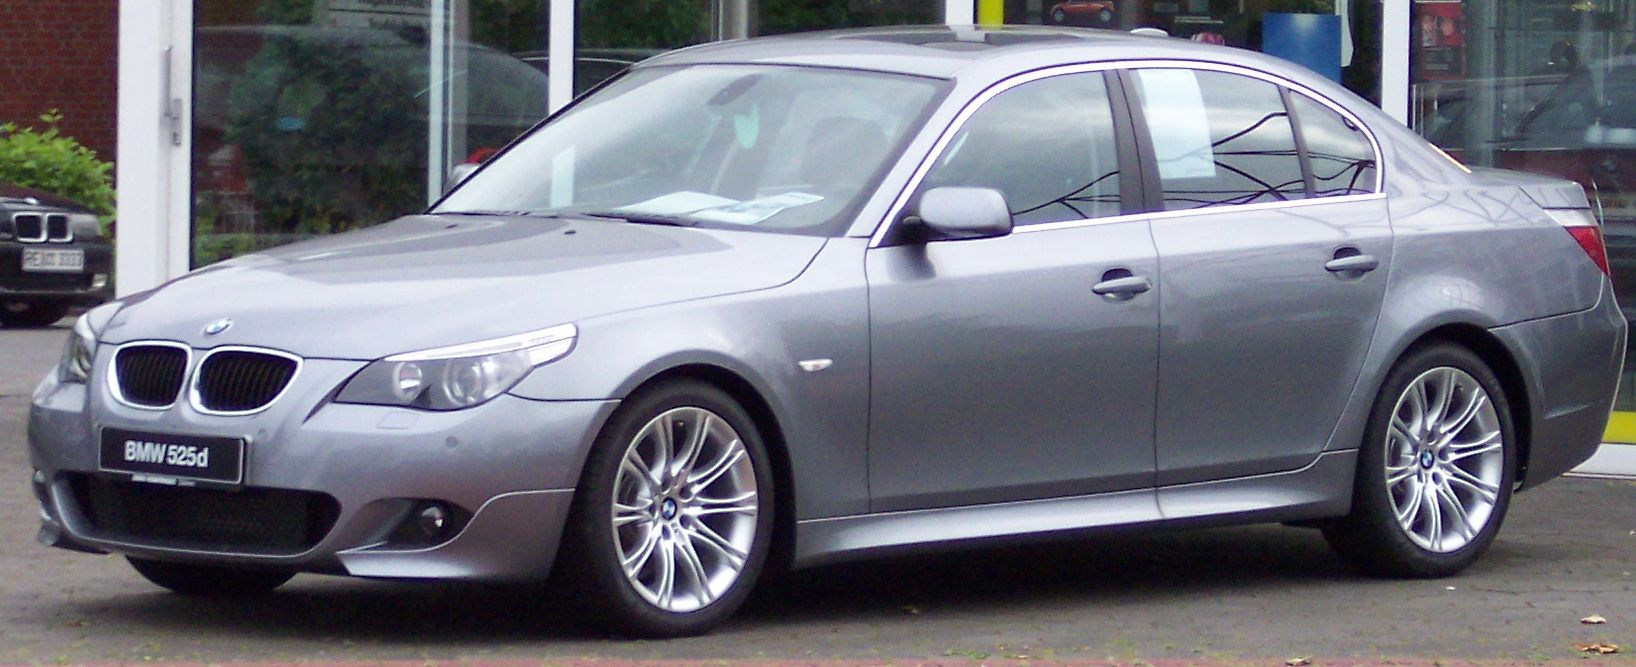 File:BMW Series5 silver vl.jpg - Wikimedia Commons